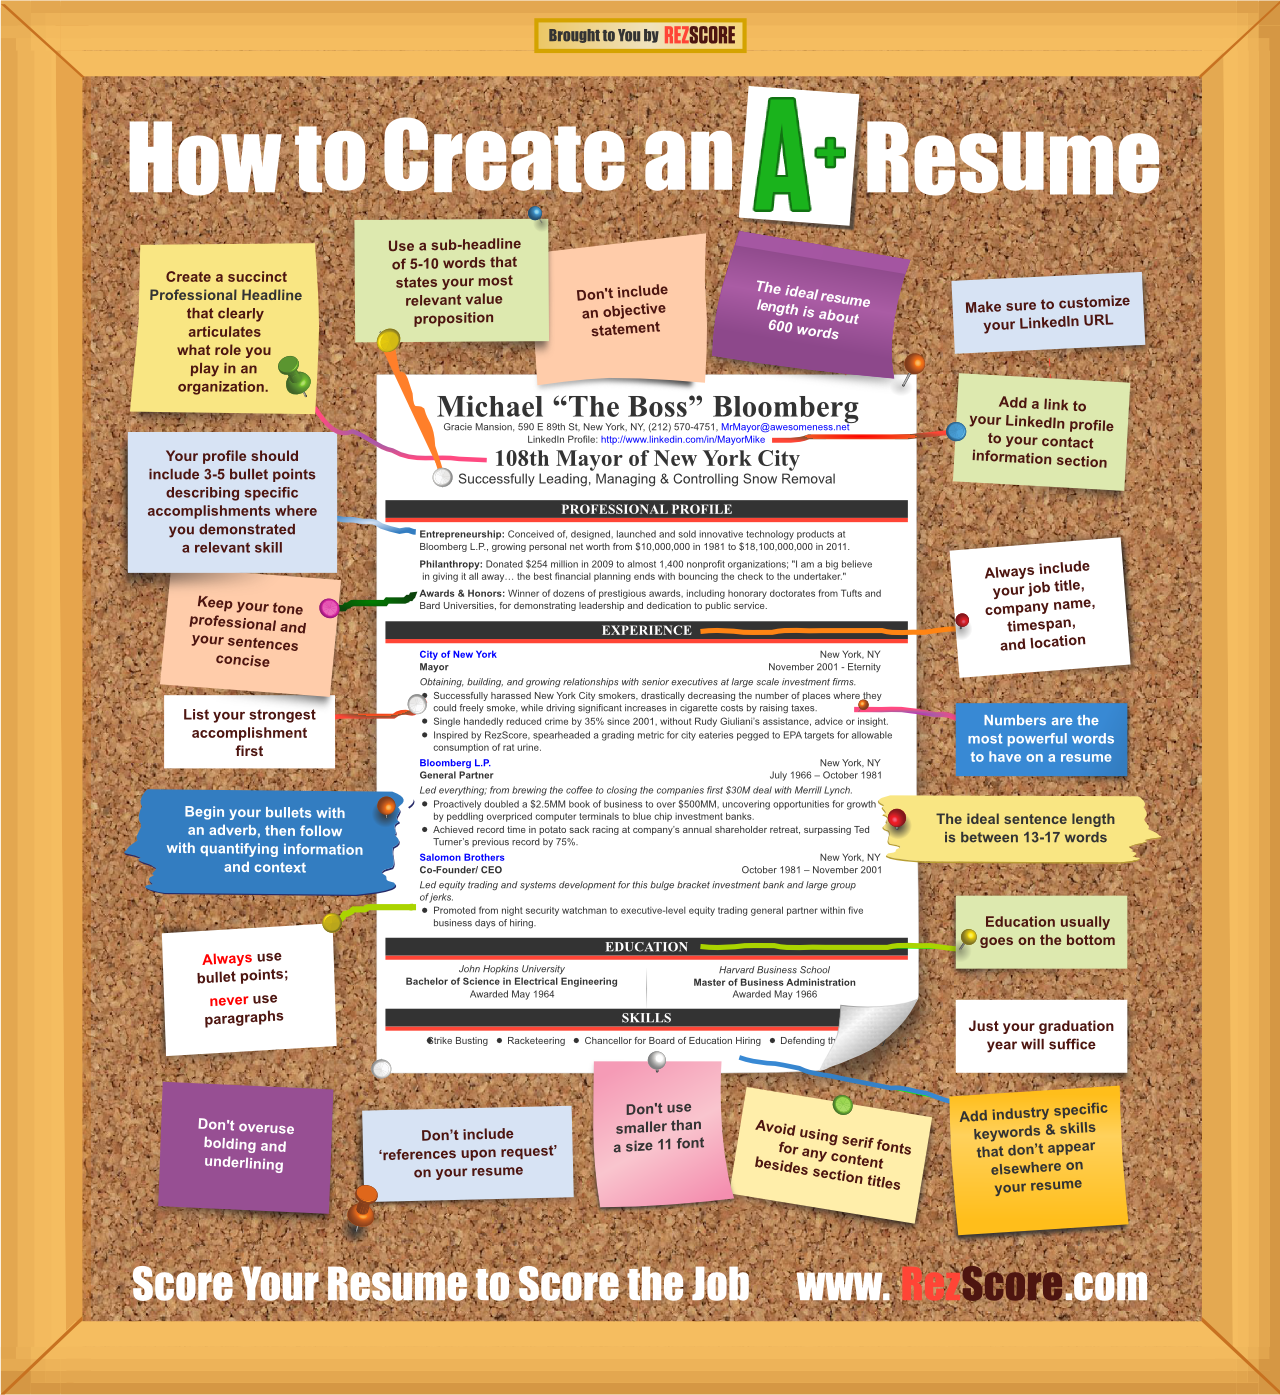 How to create an A+ resume #infographic | Surviving College Life ...